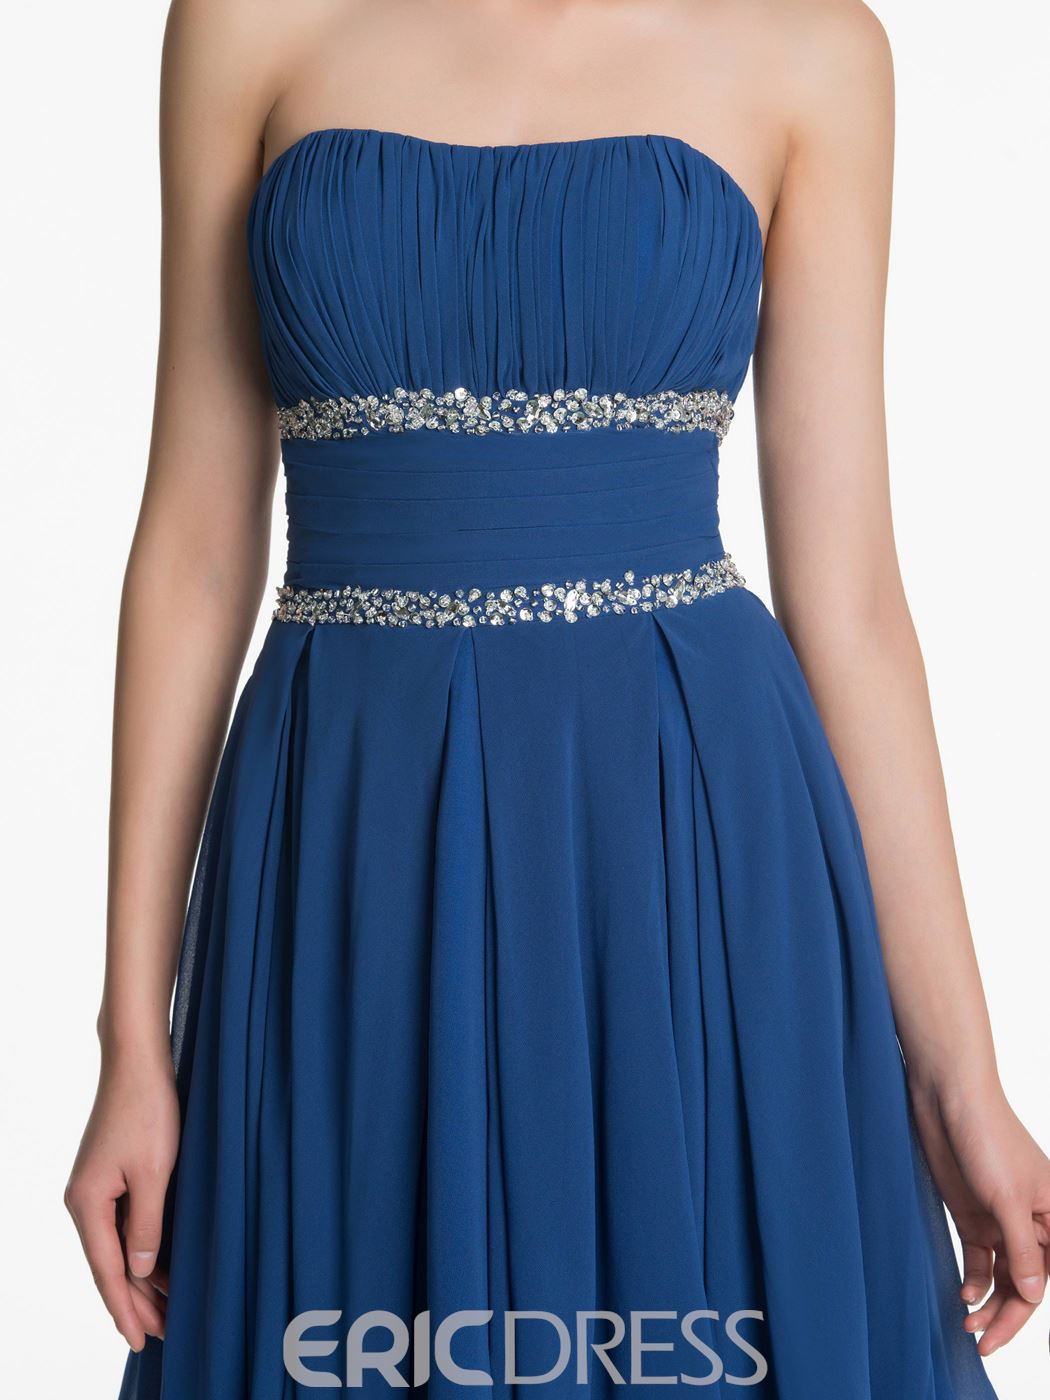 Ericdress Charming Strapless High Low Bridesmaid Dress